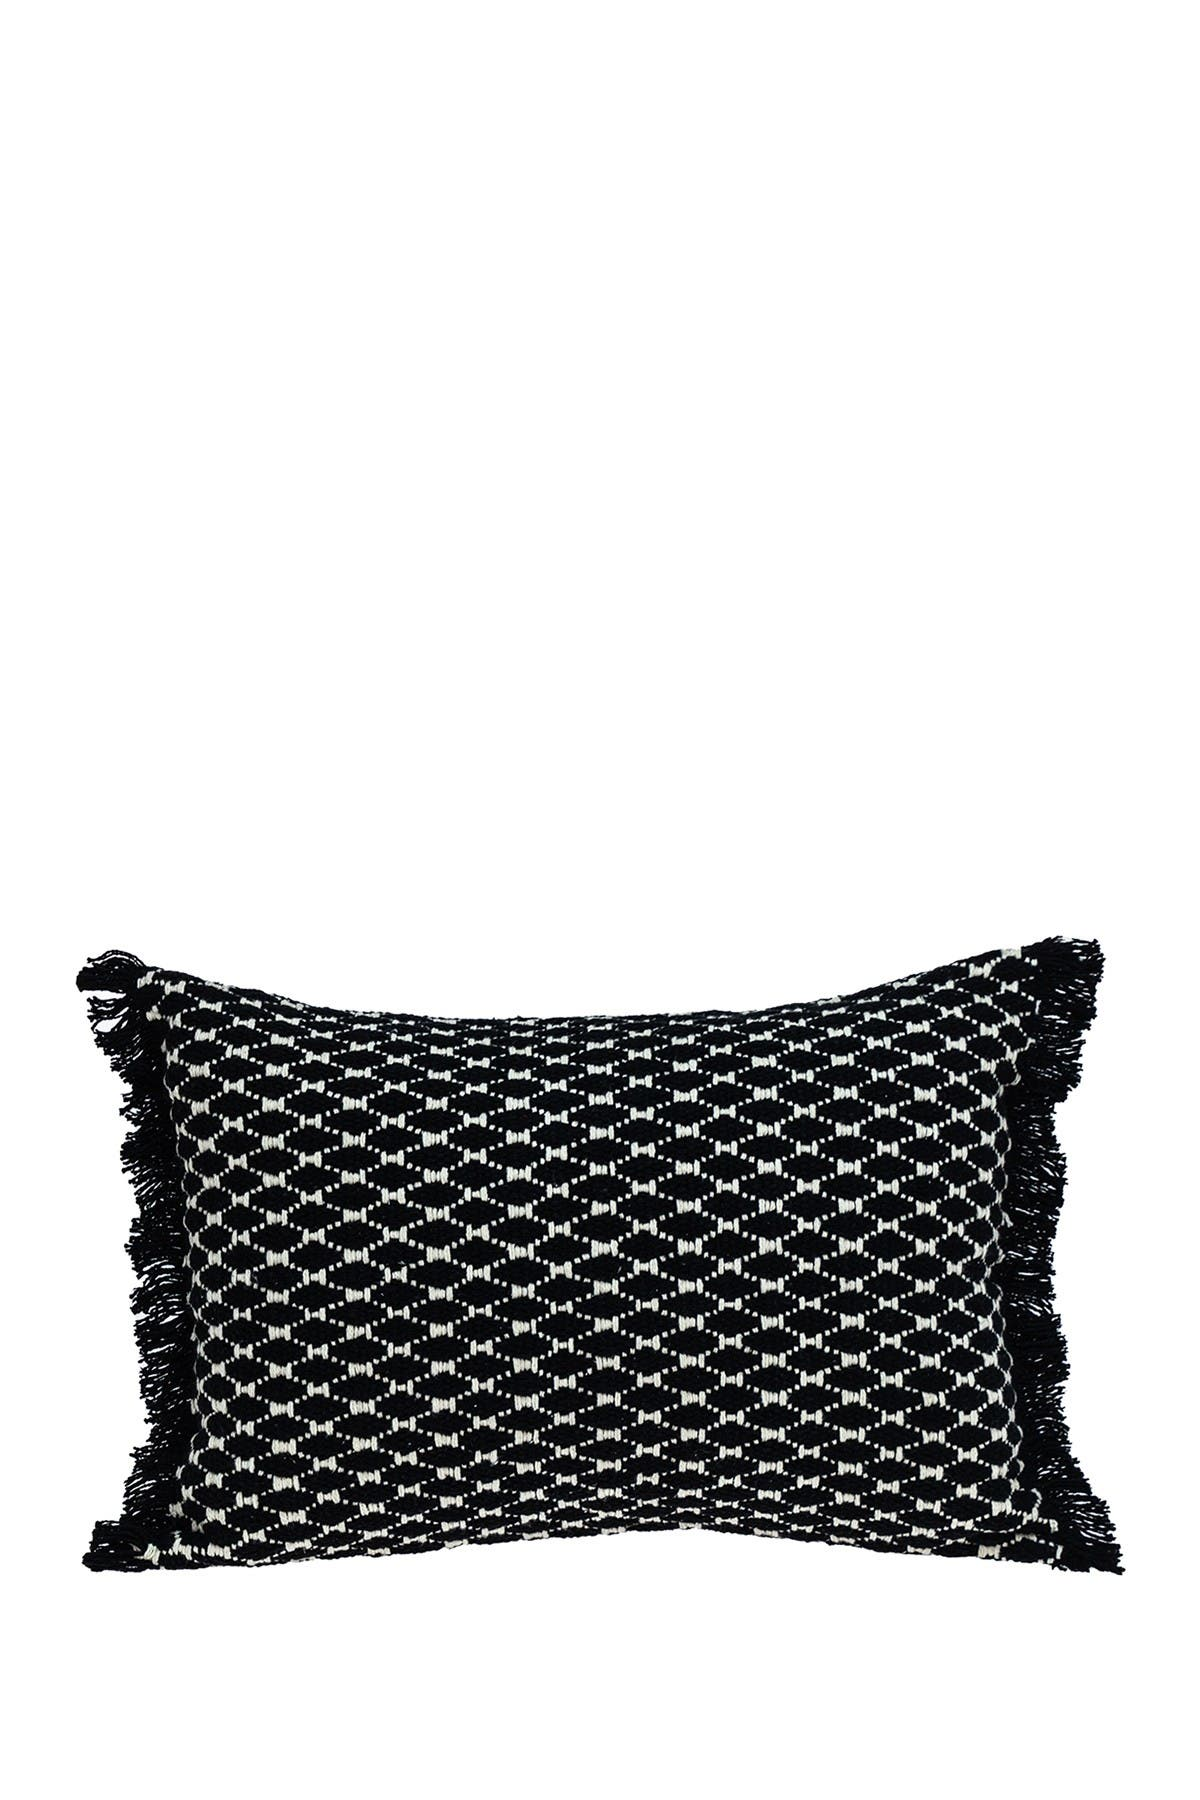 Image of Parkland Collection Calypso Transitional Black Throw Pillow